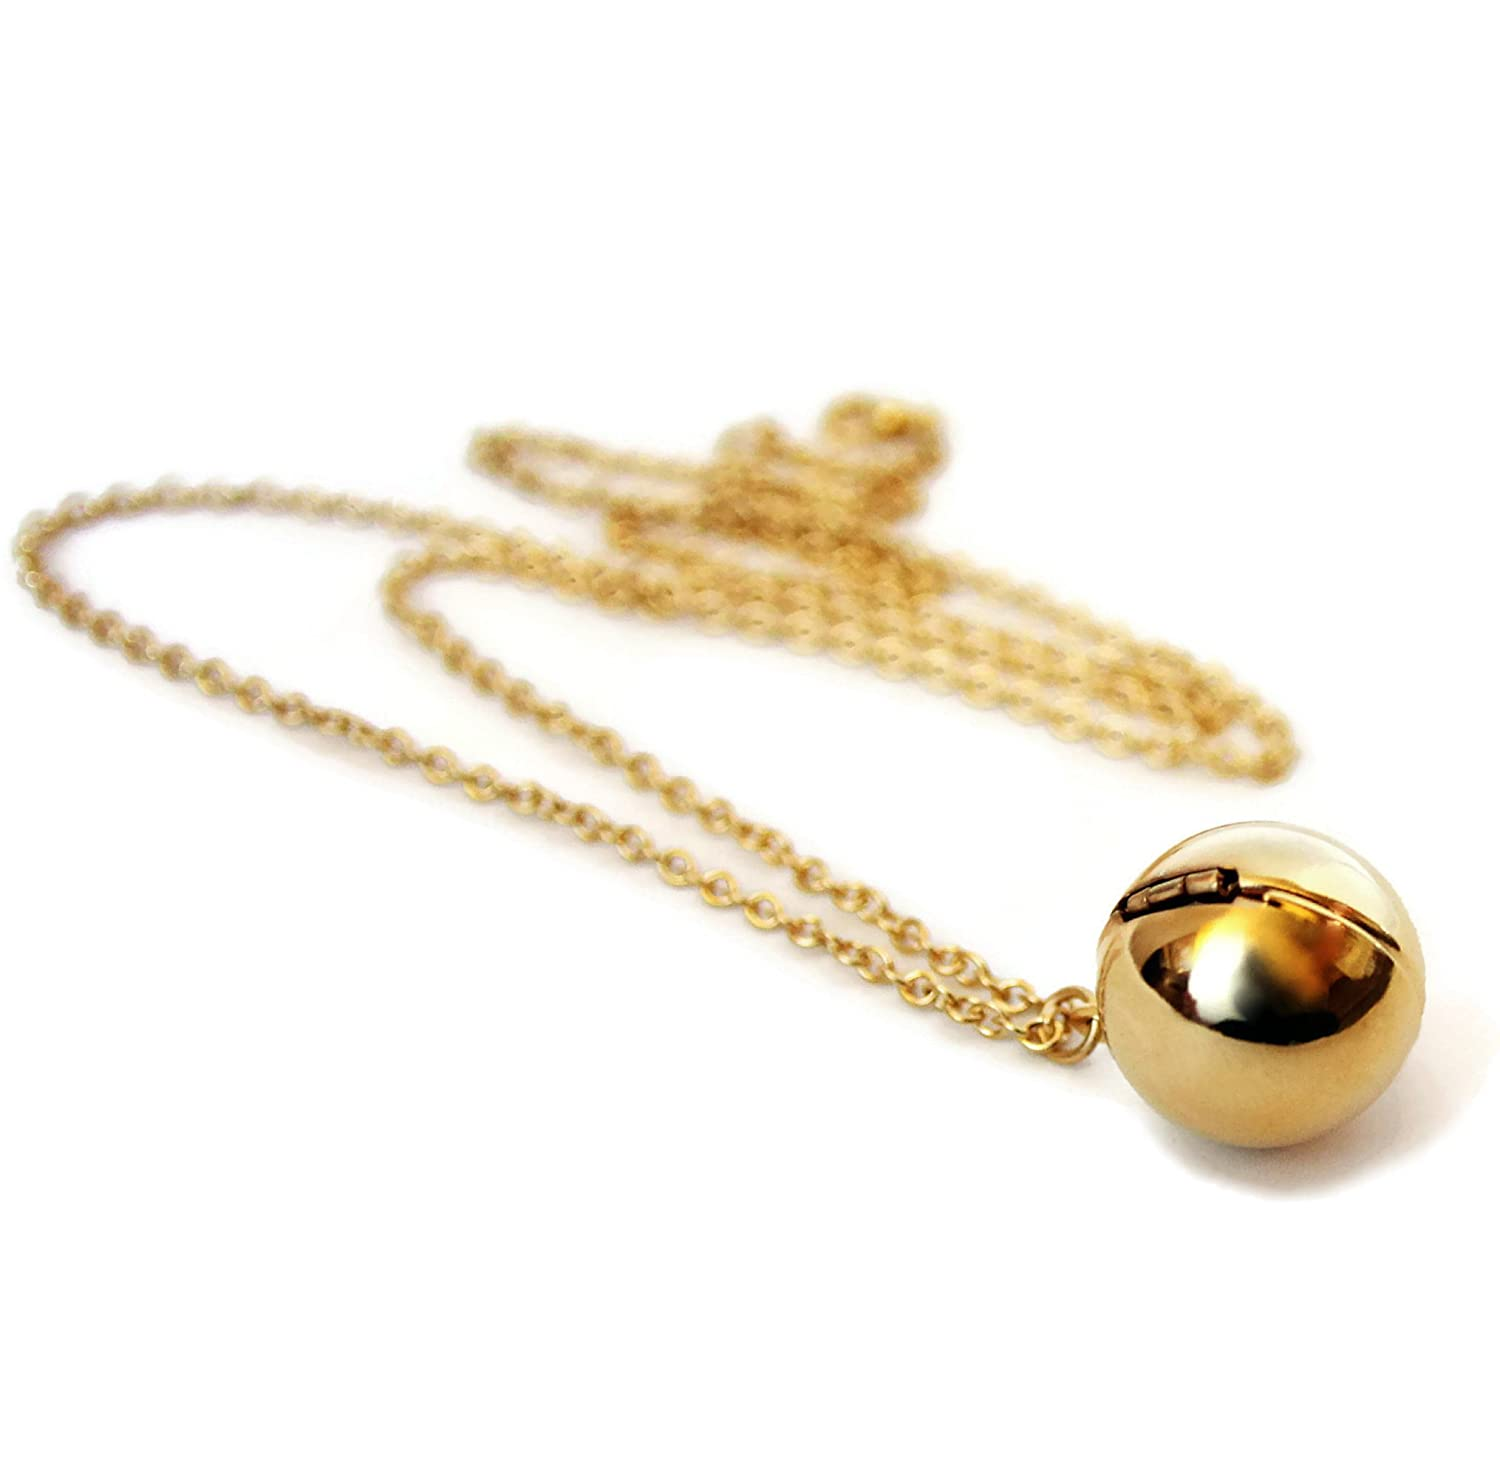 watch golden youtube of lockets latest necklace earrings designs gold